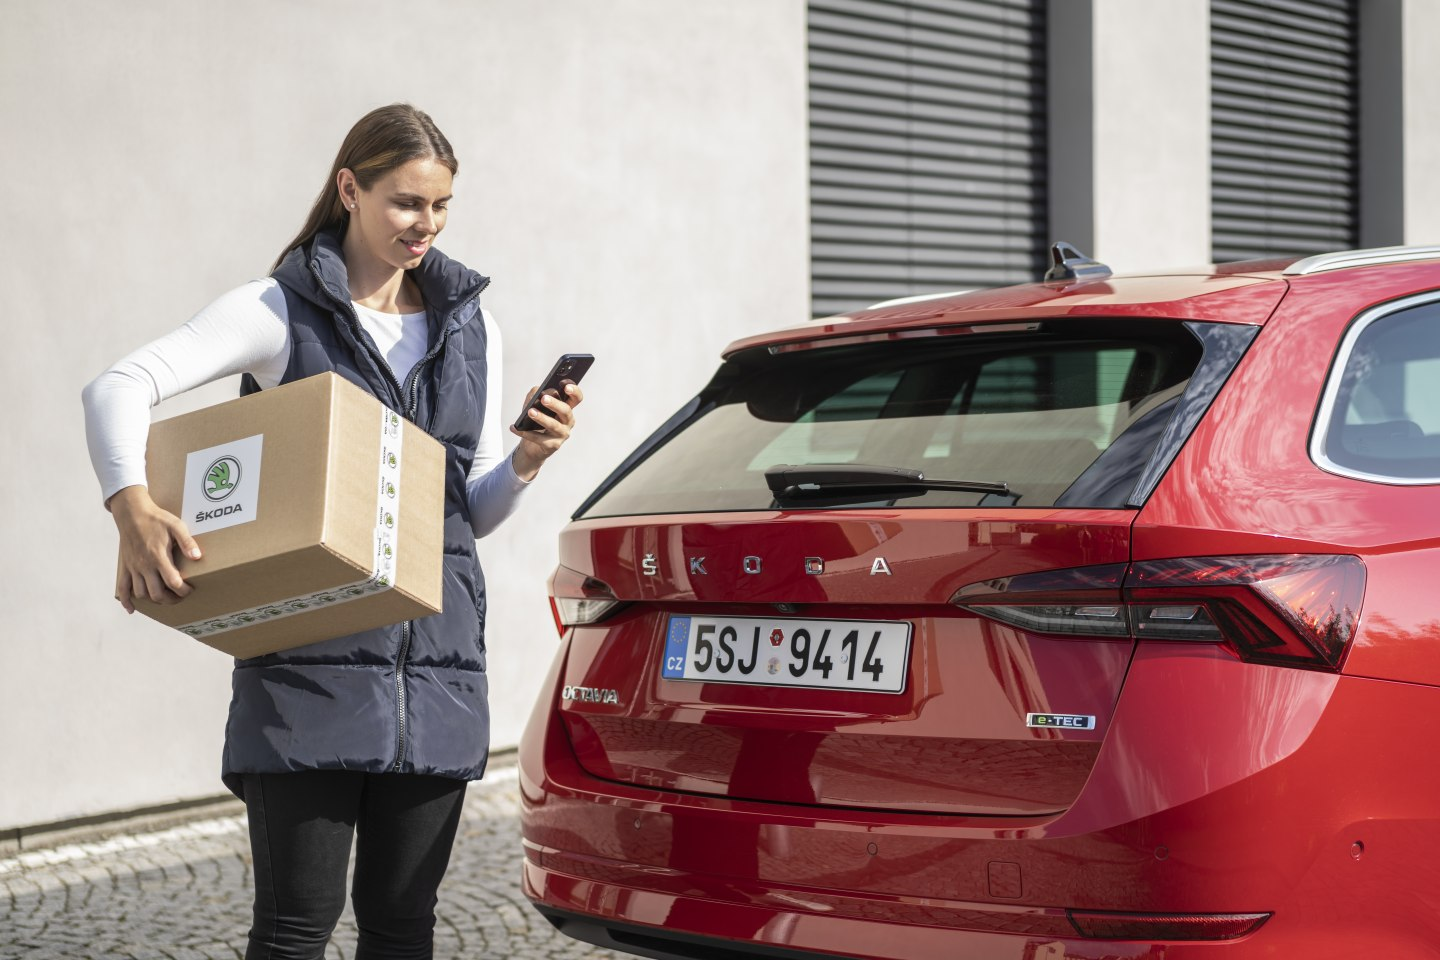 The courier service first locates the car using GPS.